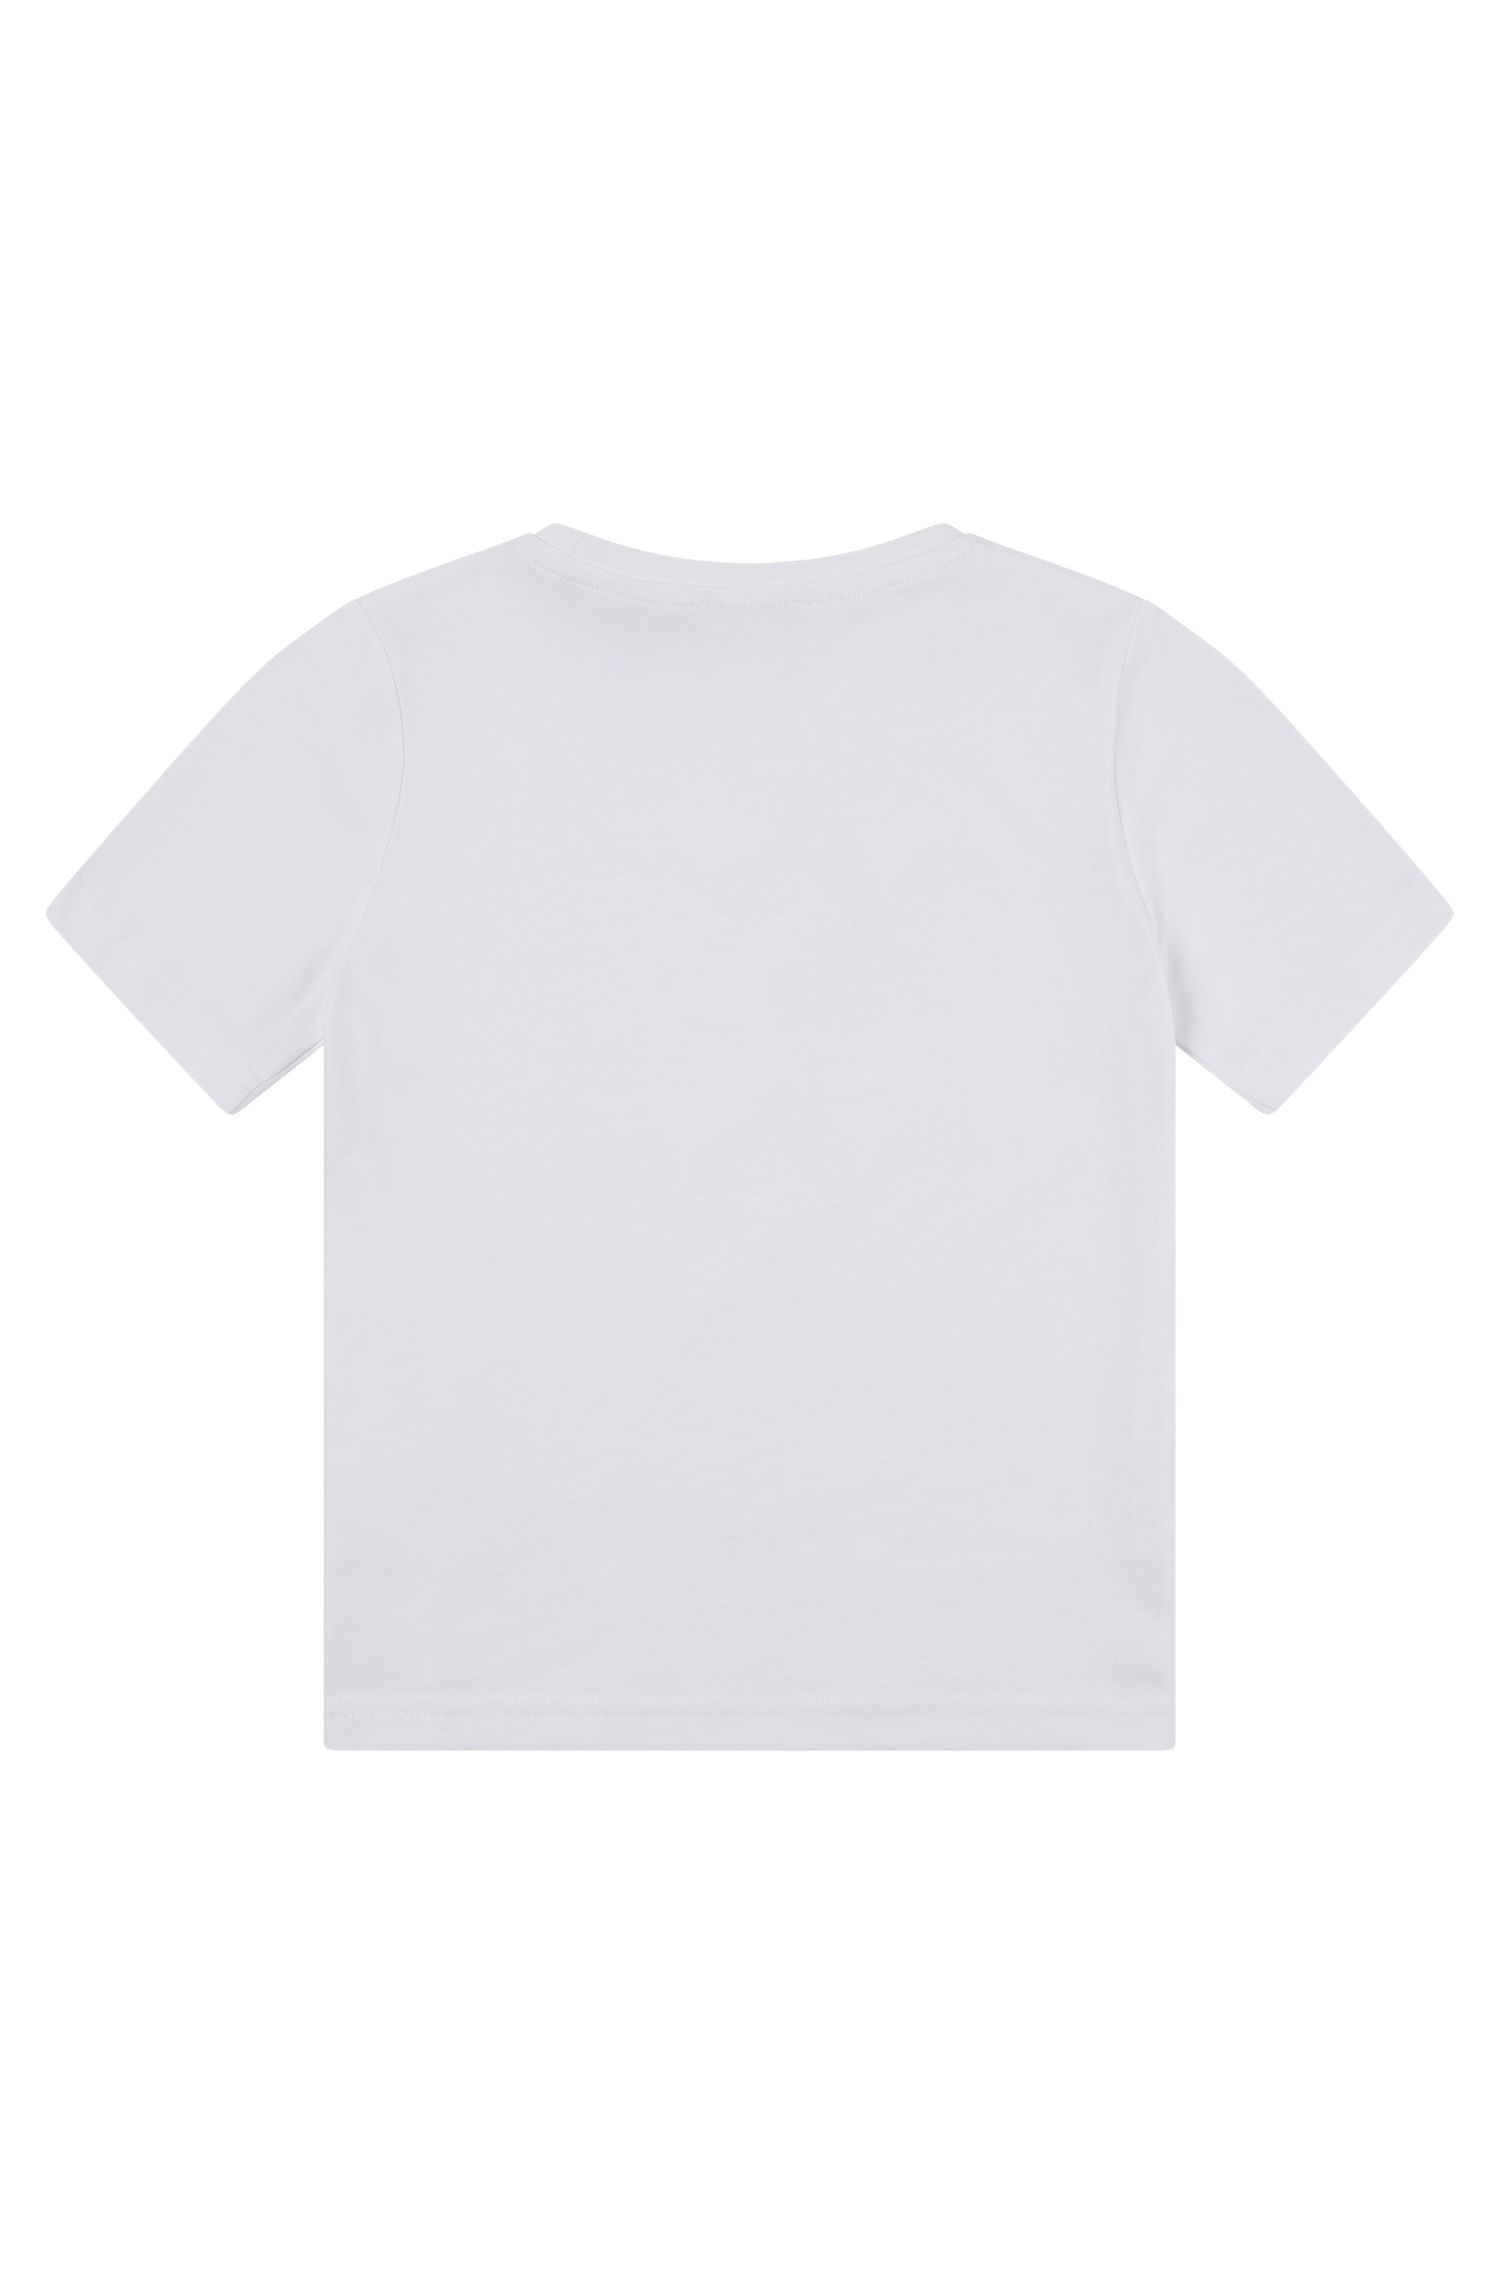 Kids' T-shirt in pure cotton with high-density logo, White